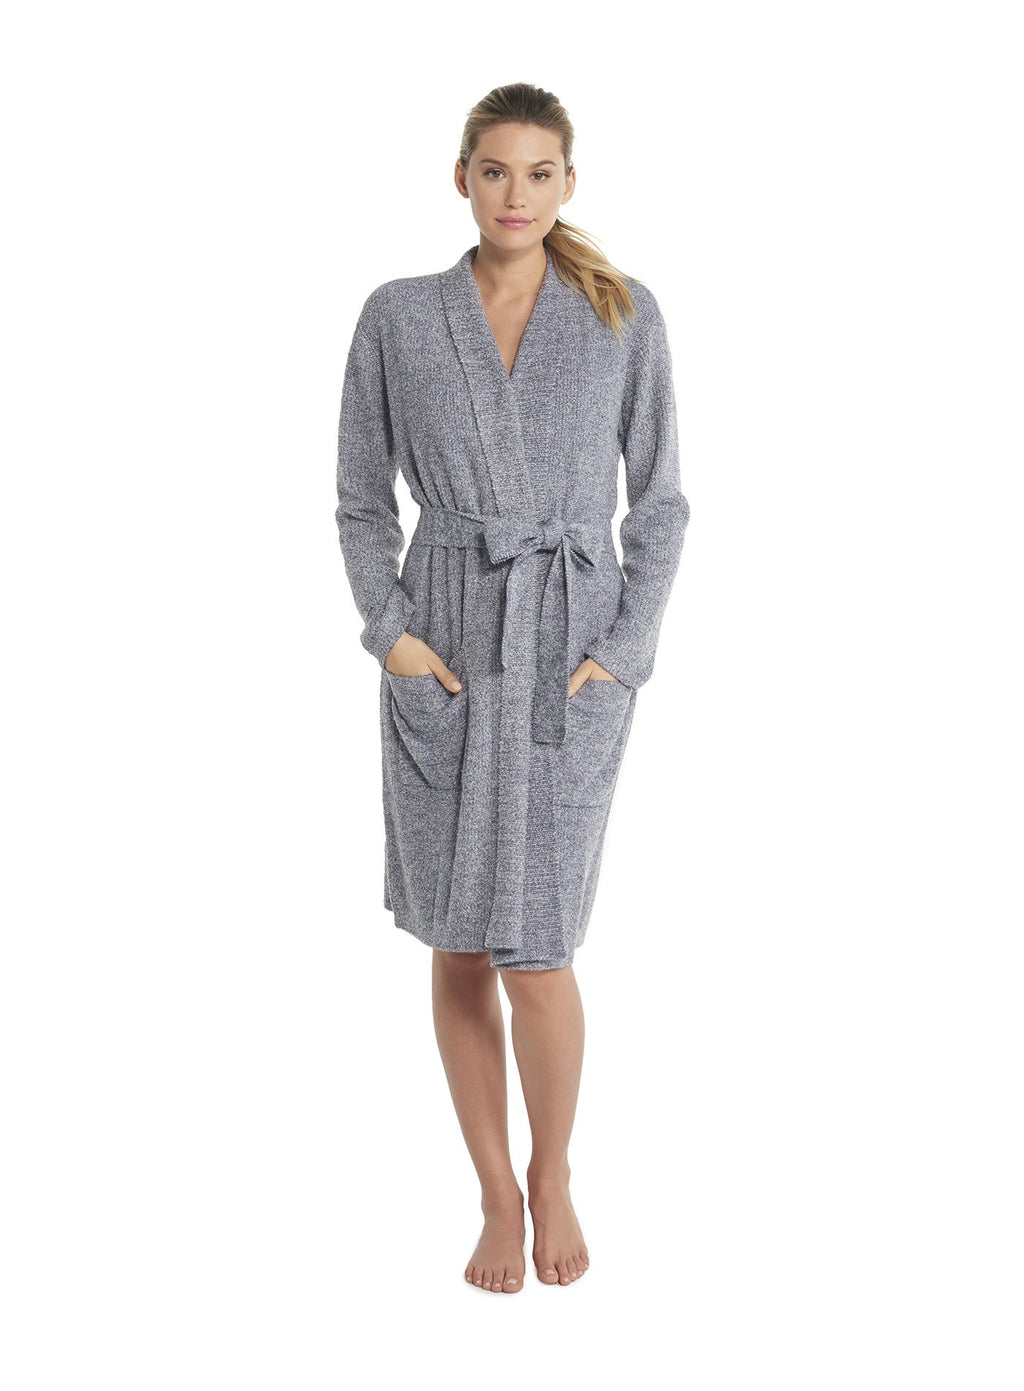 Barefoot Dreams Ribbed Robe - Pacific Blue Pearl